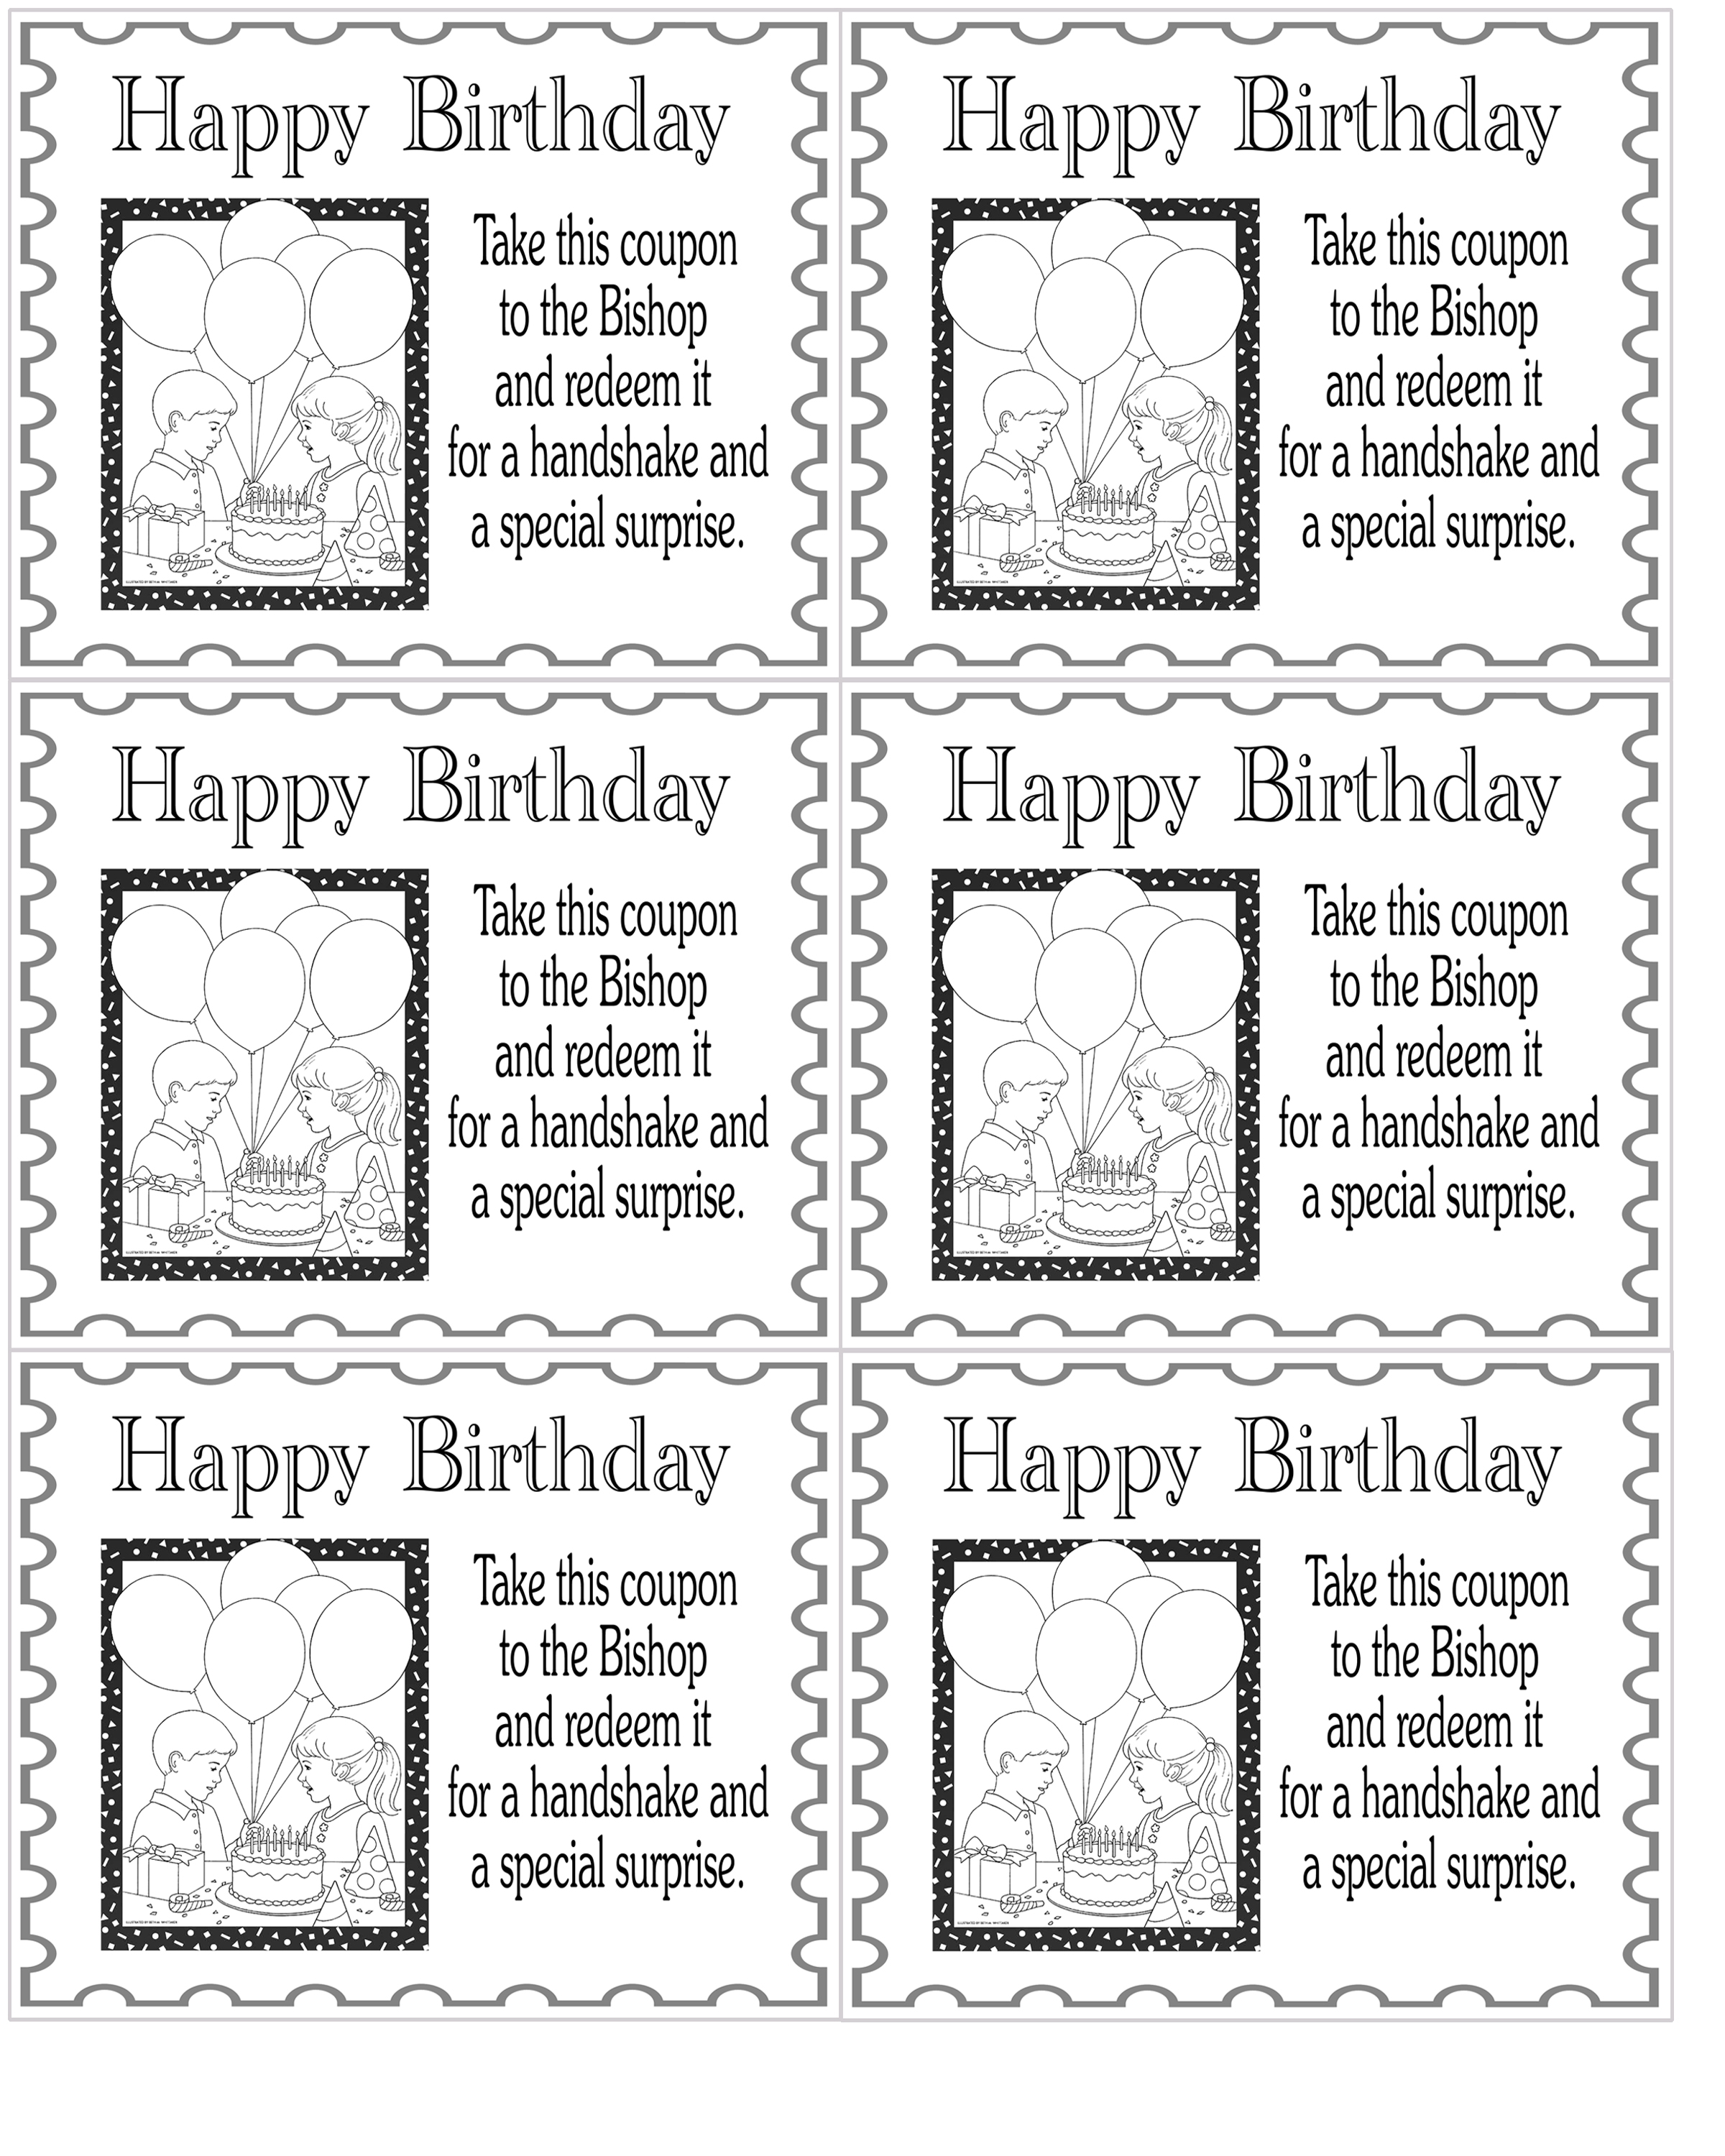 birthday pencils and coupons